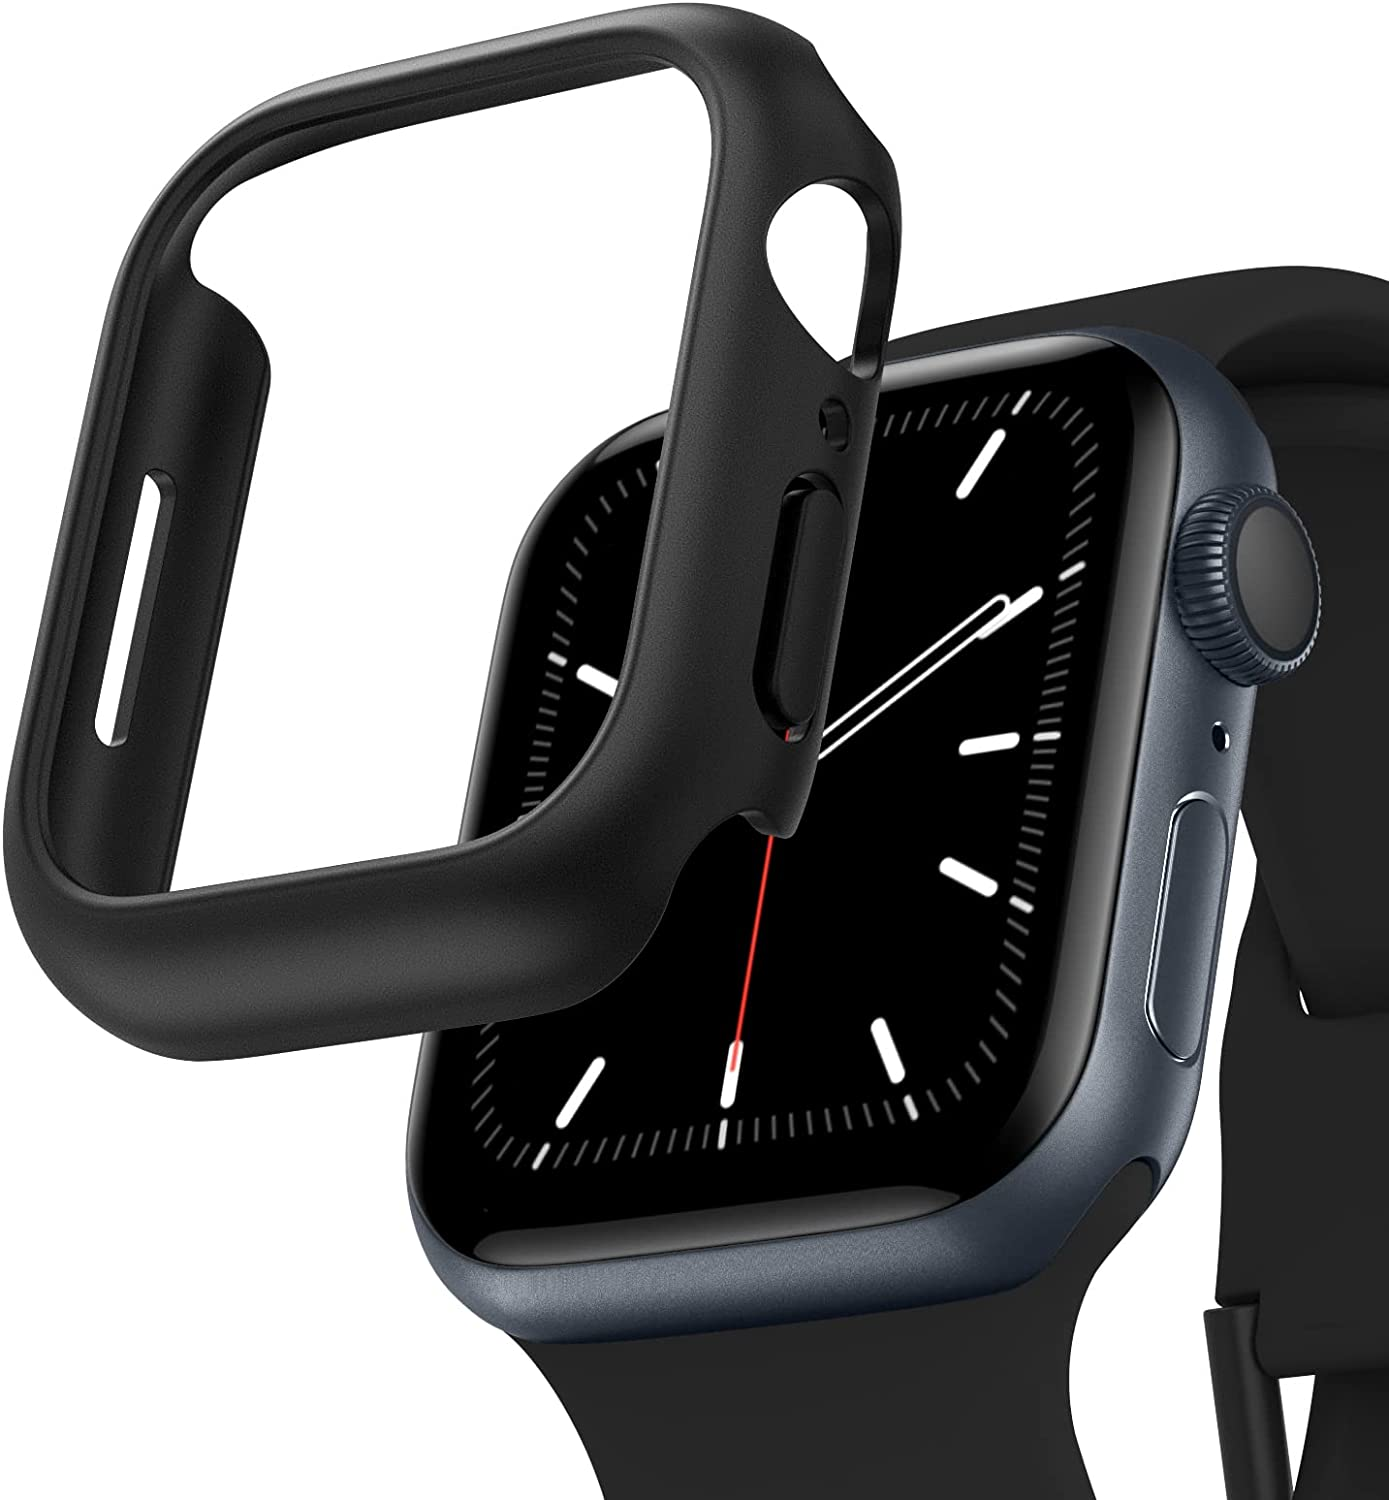 Recoppa Compatible for Apple Watch Case 45mm Series 7, Shockproof Ultra-Thin Hard PC Bumper Case All-Around Edge Protective Cover Frame[NO Screen Protector] for iWatch Accessories, Black